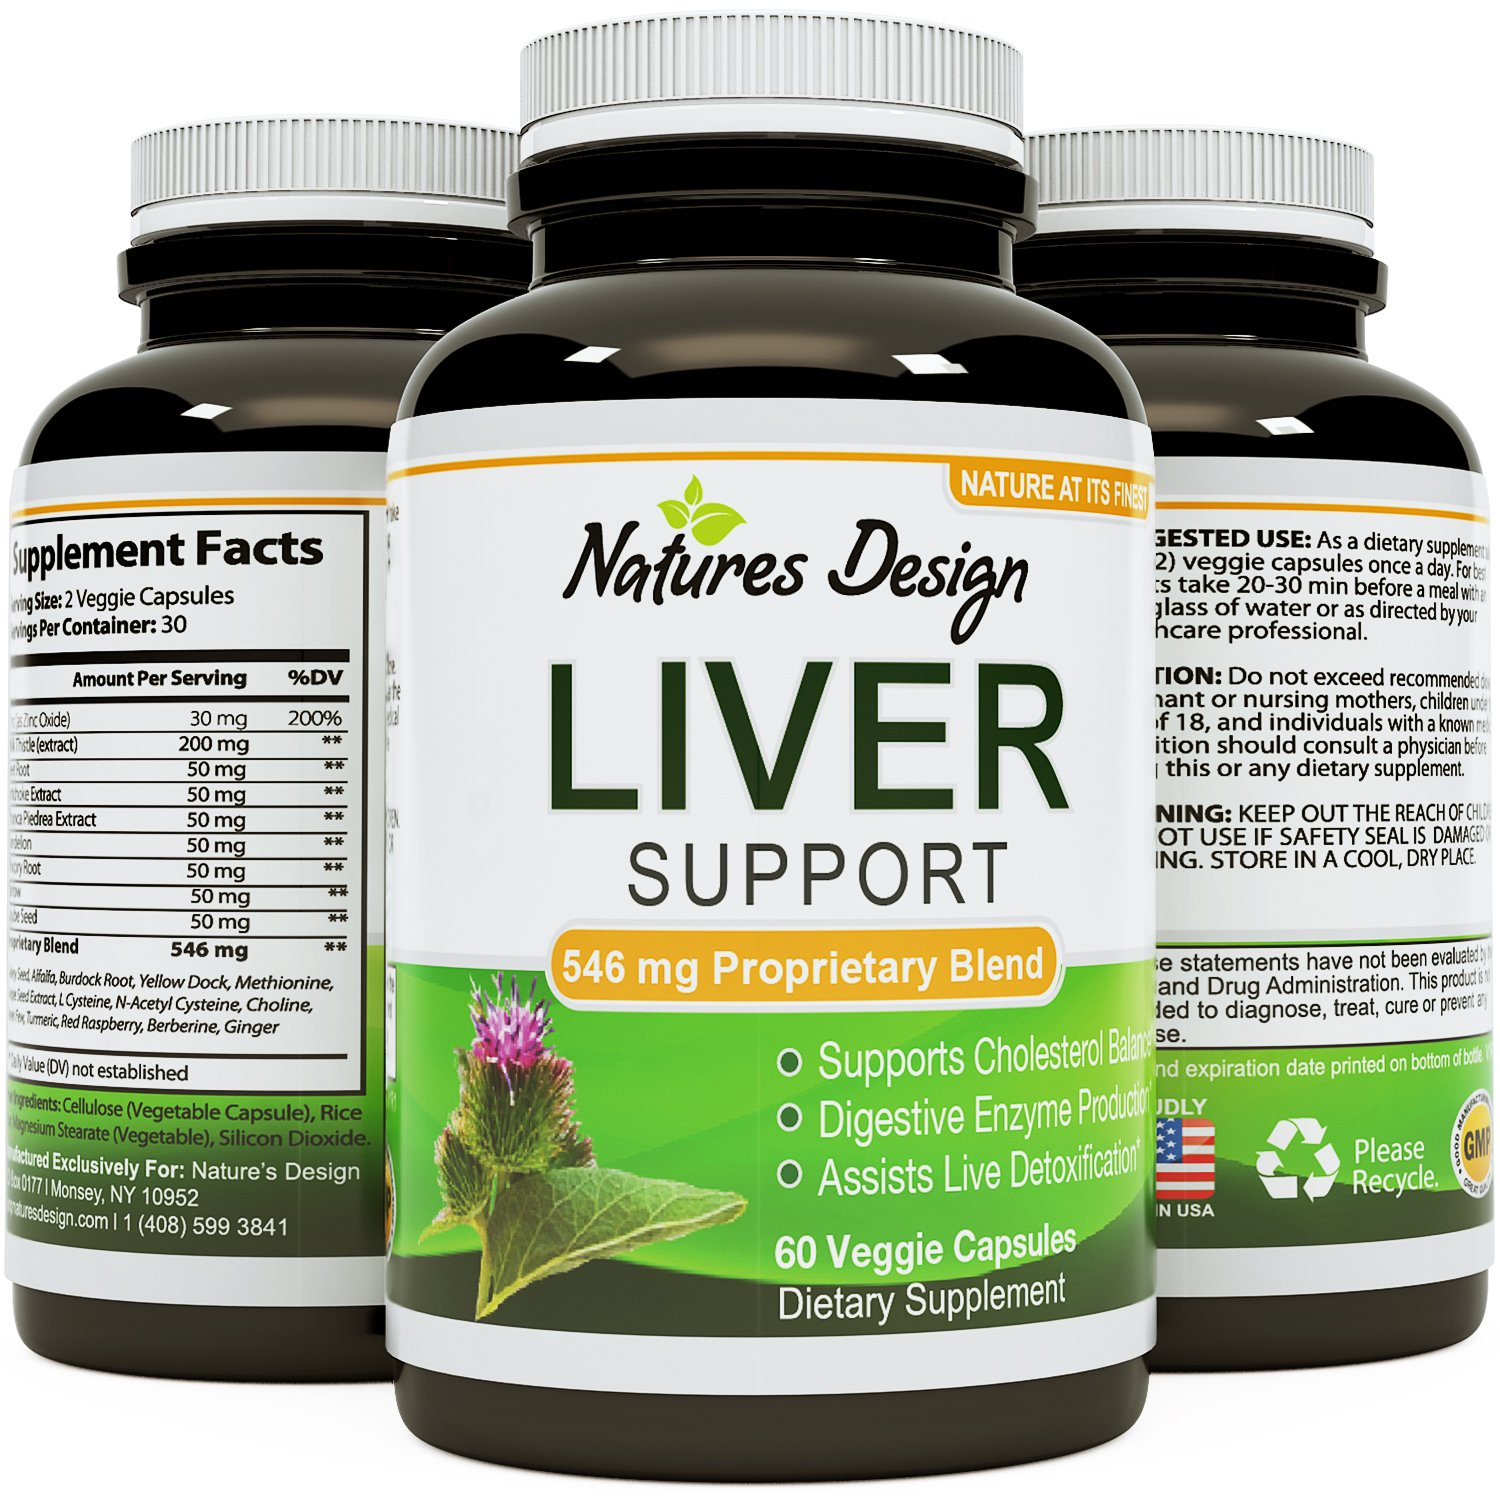 All Natural Detox Cleanse Liver Support Vitamins for Men and Women with Milk Thistle, Dandelion and Artichoke Health Capsules Relieve Hangover a Supplements Boost Immune System Metabolism